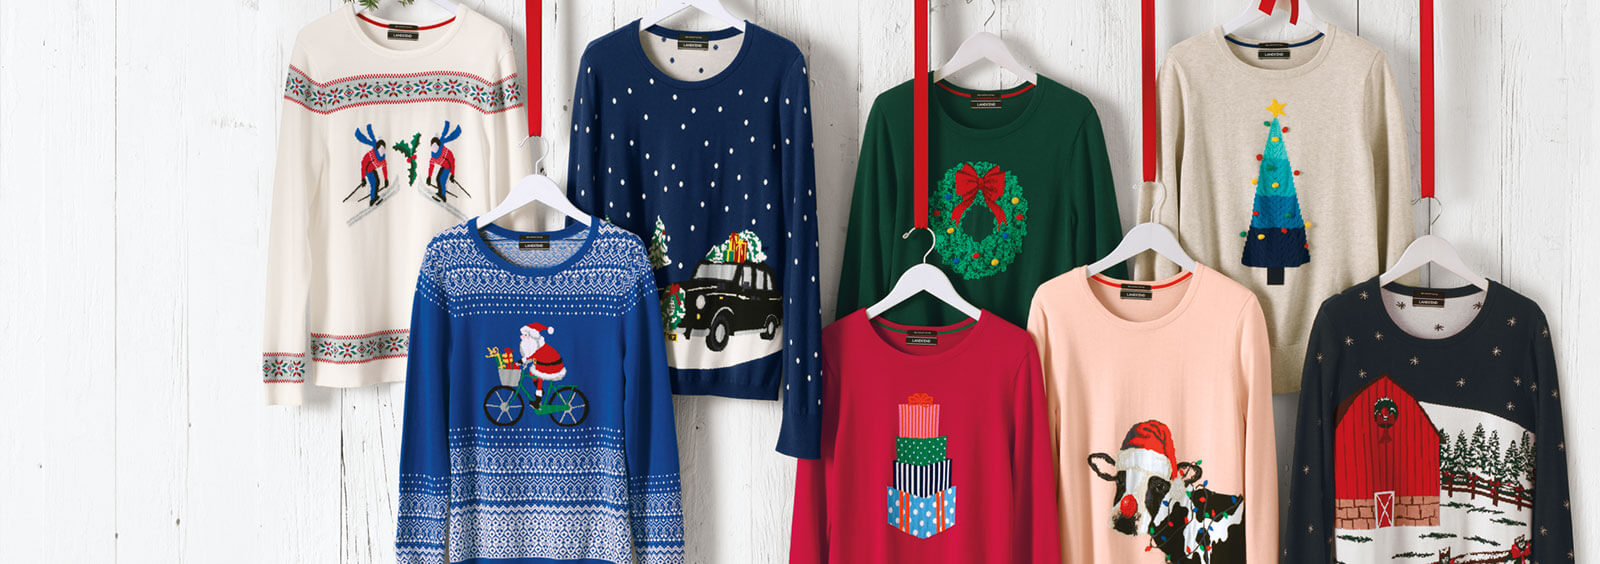 The history of Christmas sweaters   Lands' End